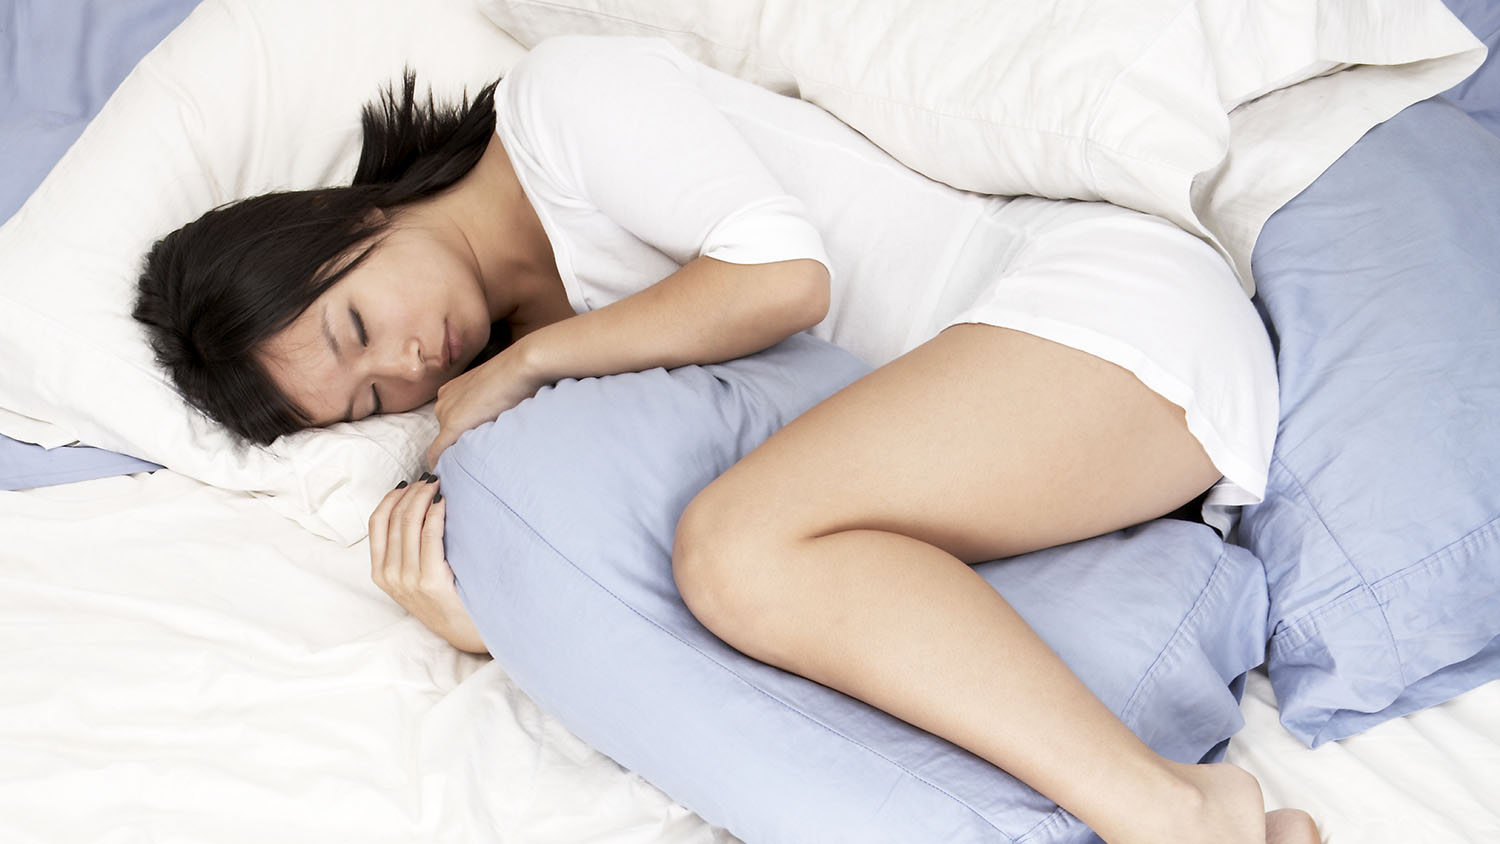 10 best body pillows to curl up with tonight first for women